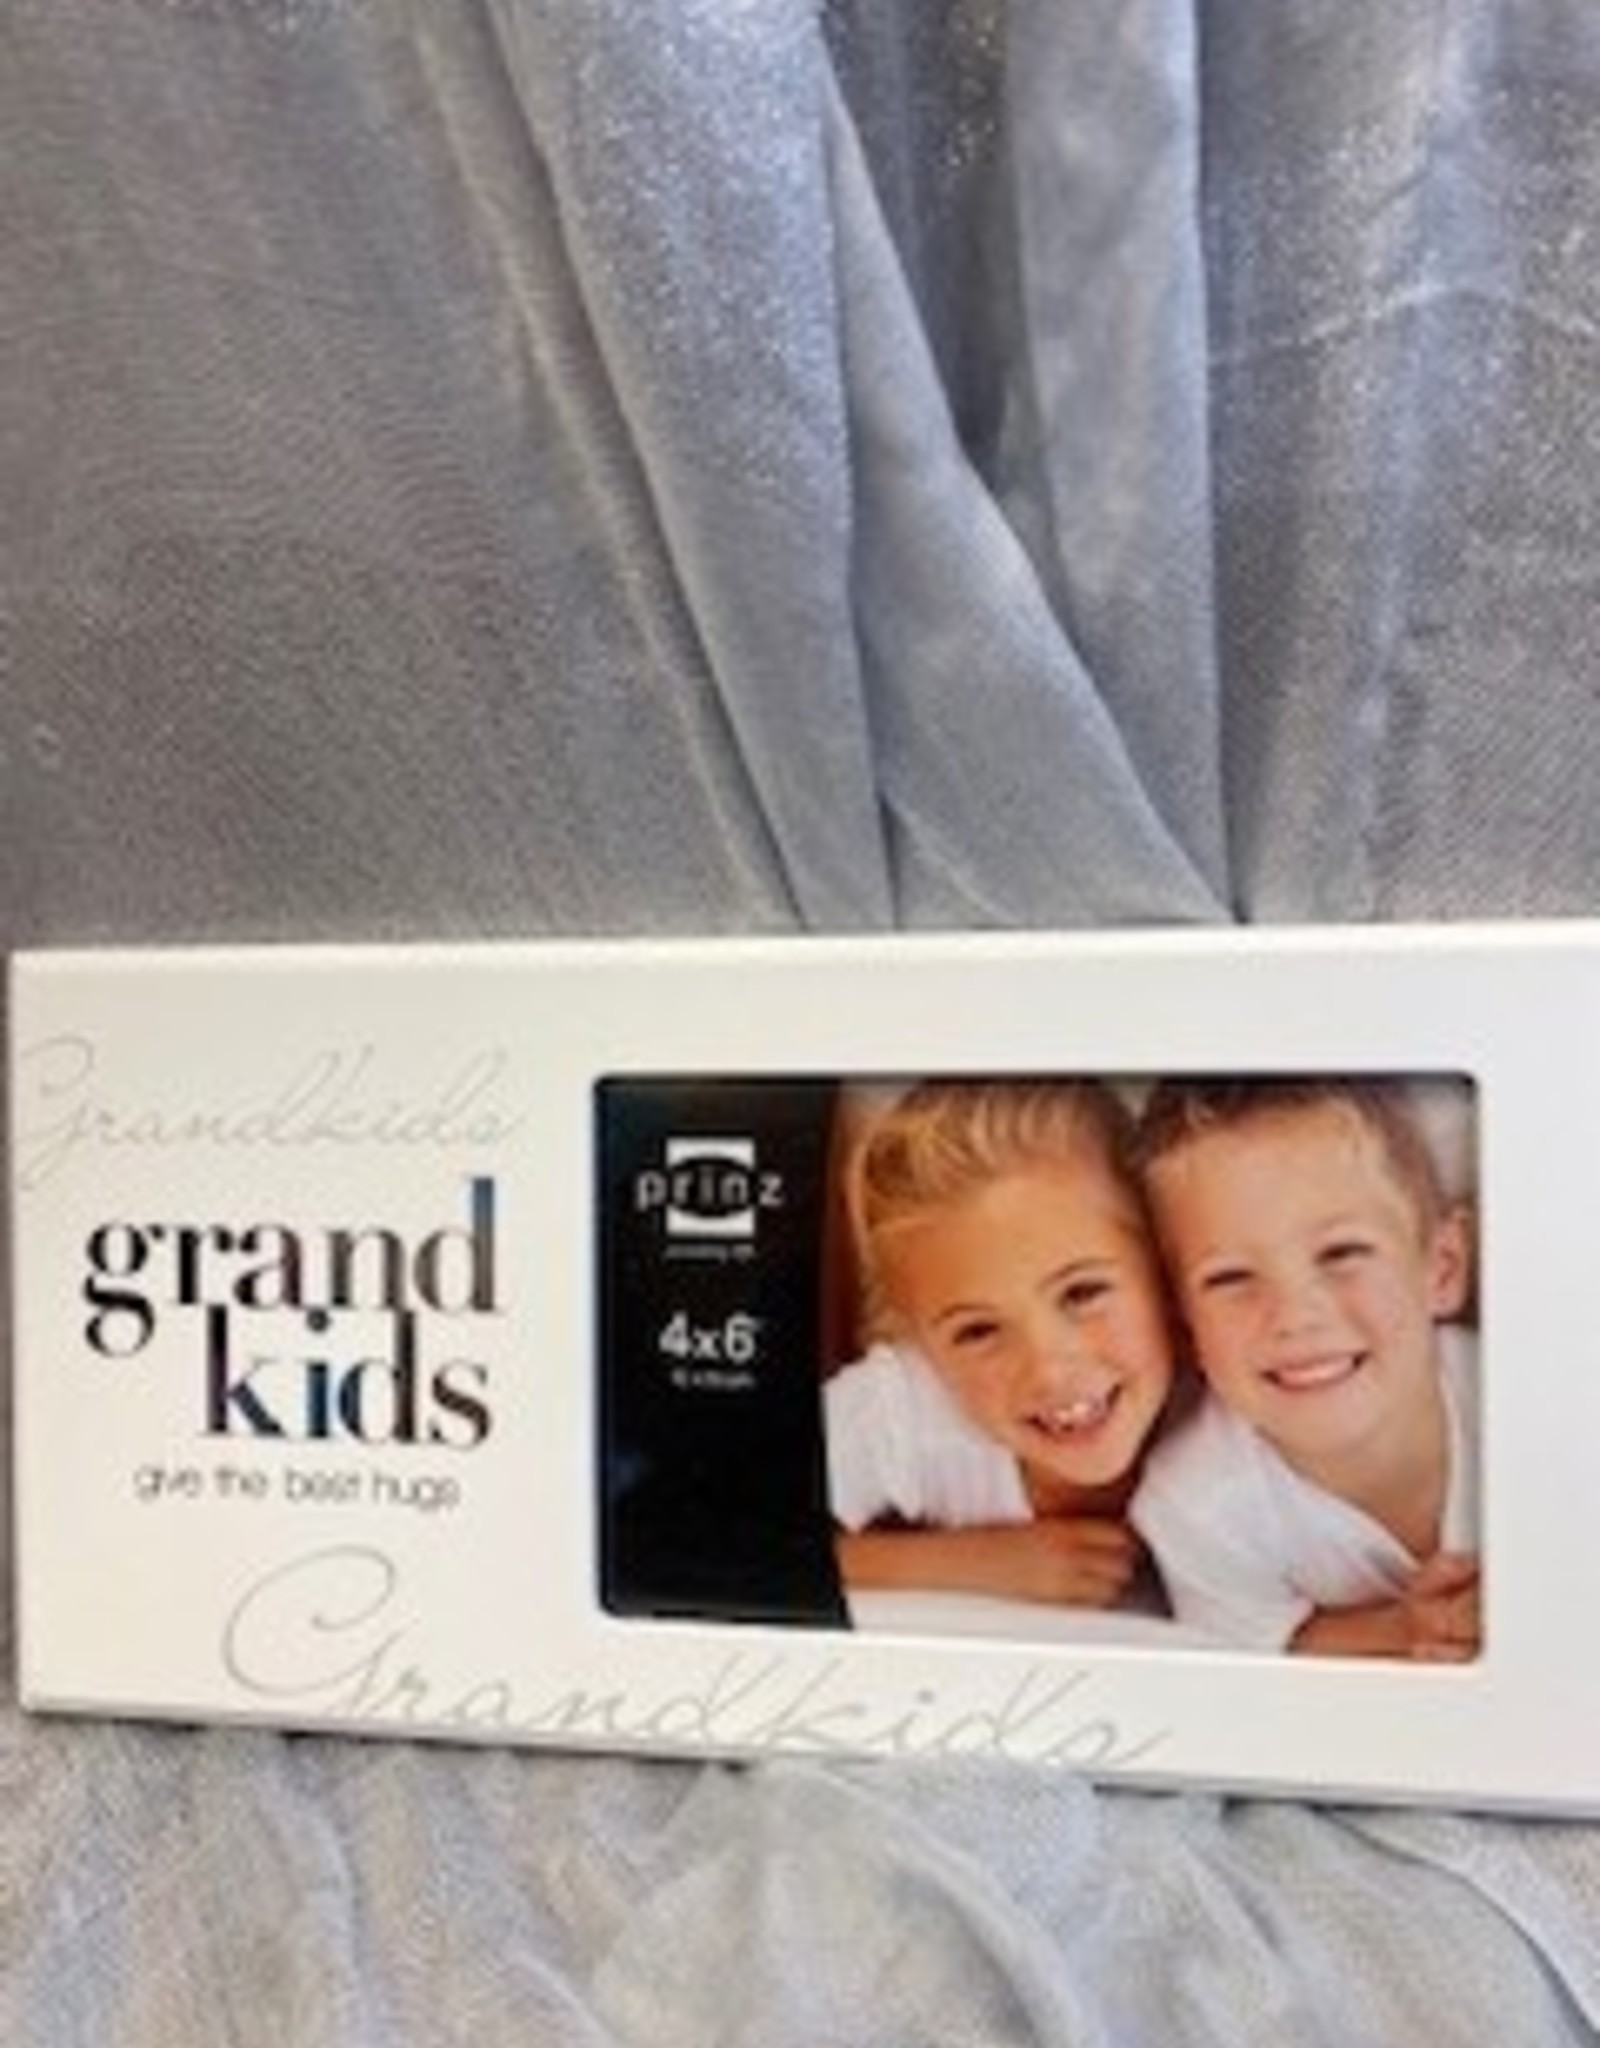 Pretty Strong Grandkids Give the Best Hugs Frame